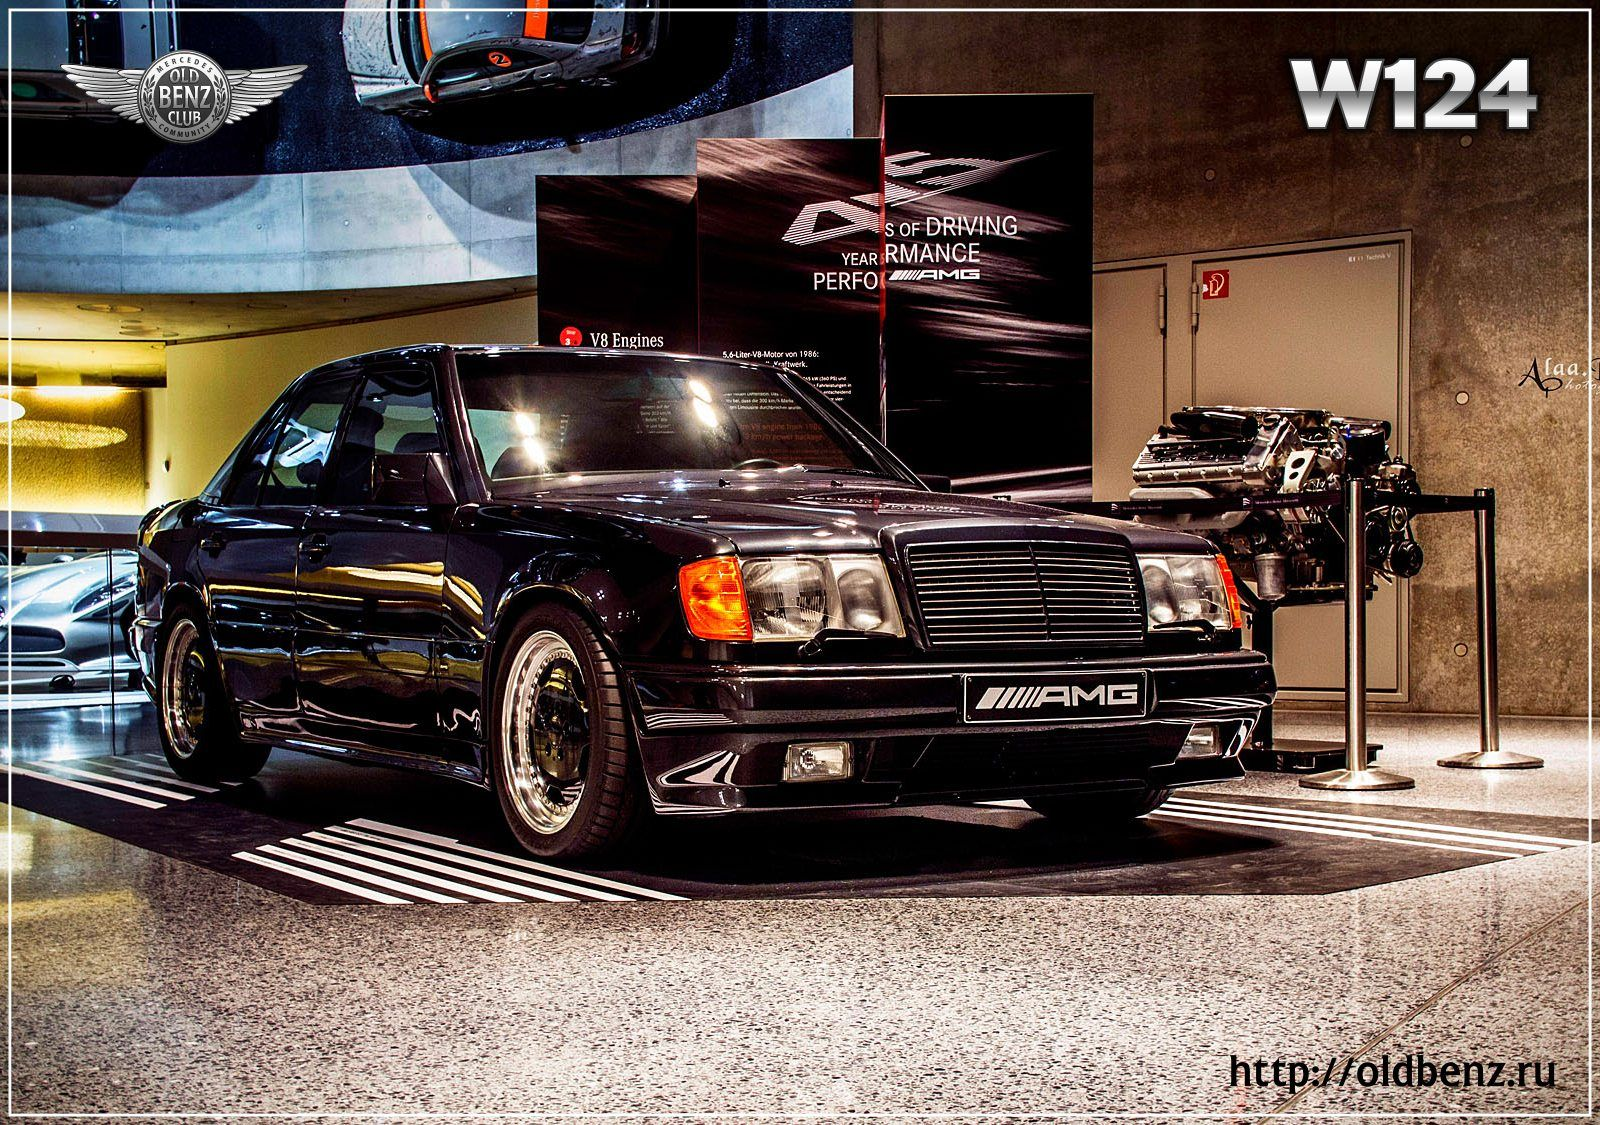 Image result for w124 wallpaper